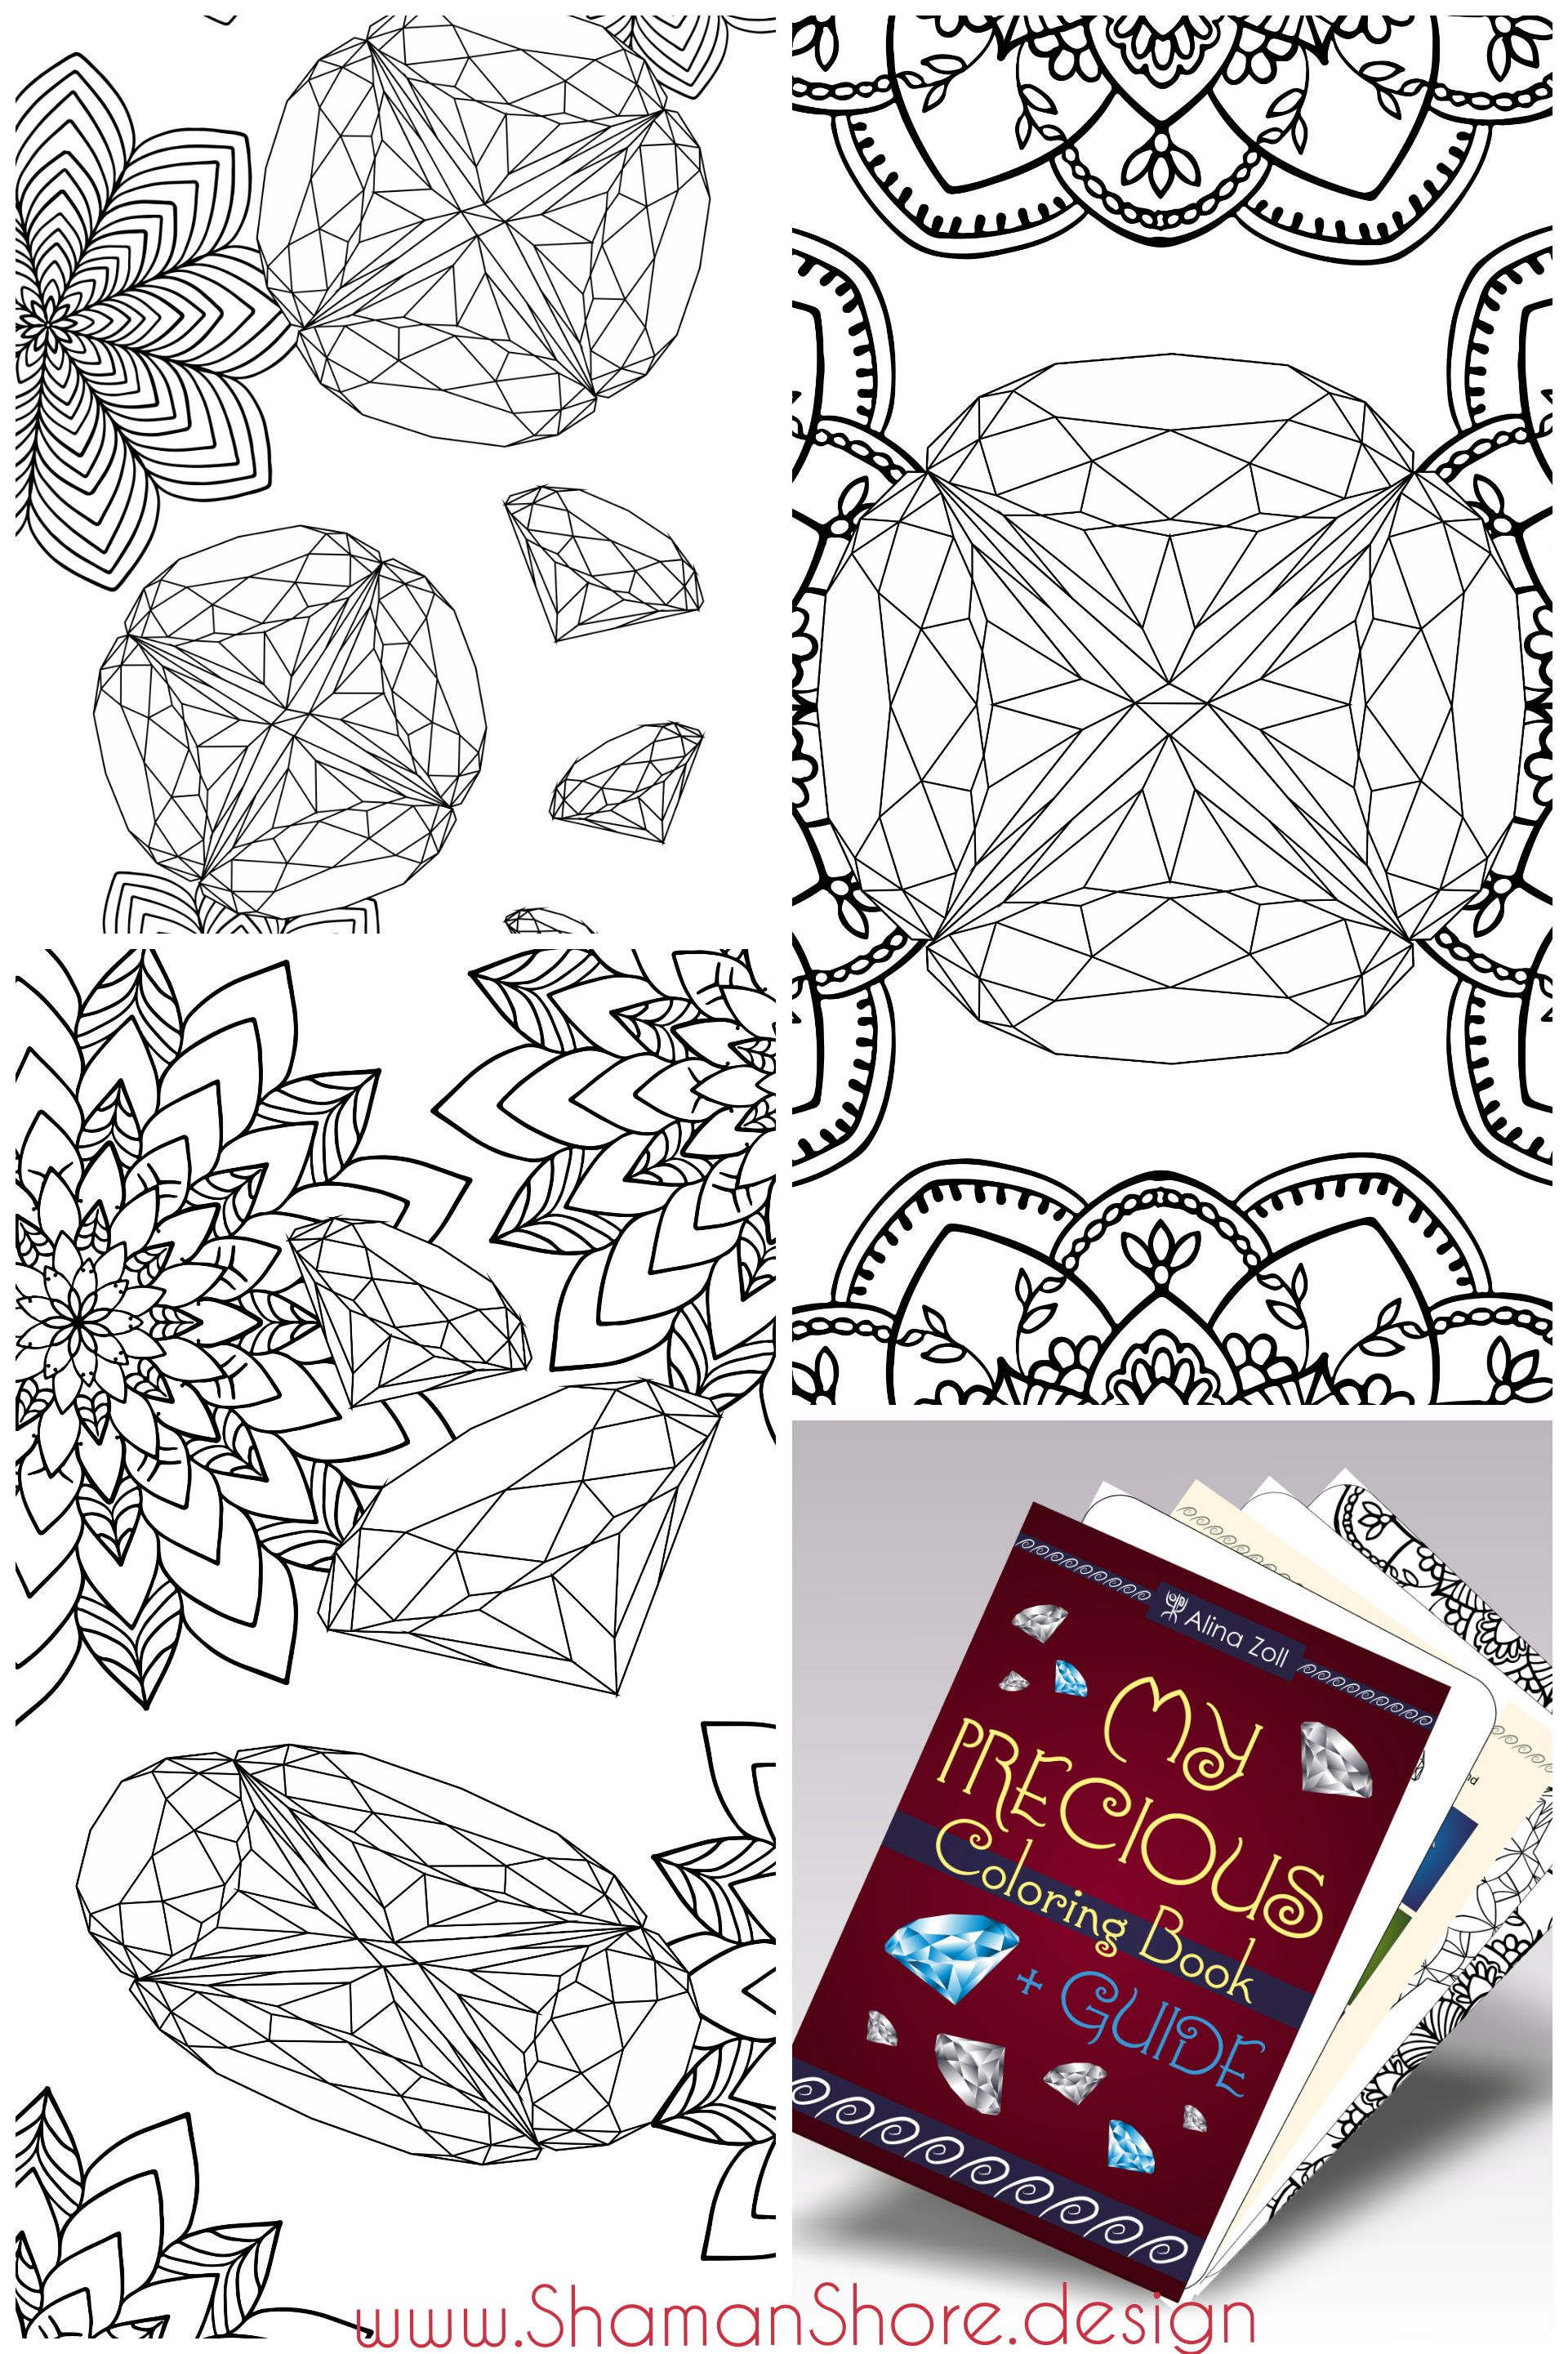 Gemstone Adult Coloring Book Download Pages With Guide And Examples Diamond Drawing Tutorial Printable Digital